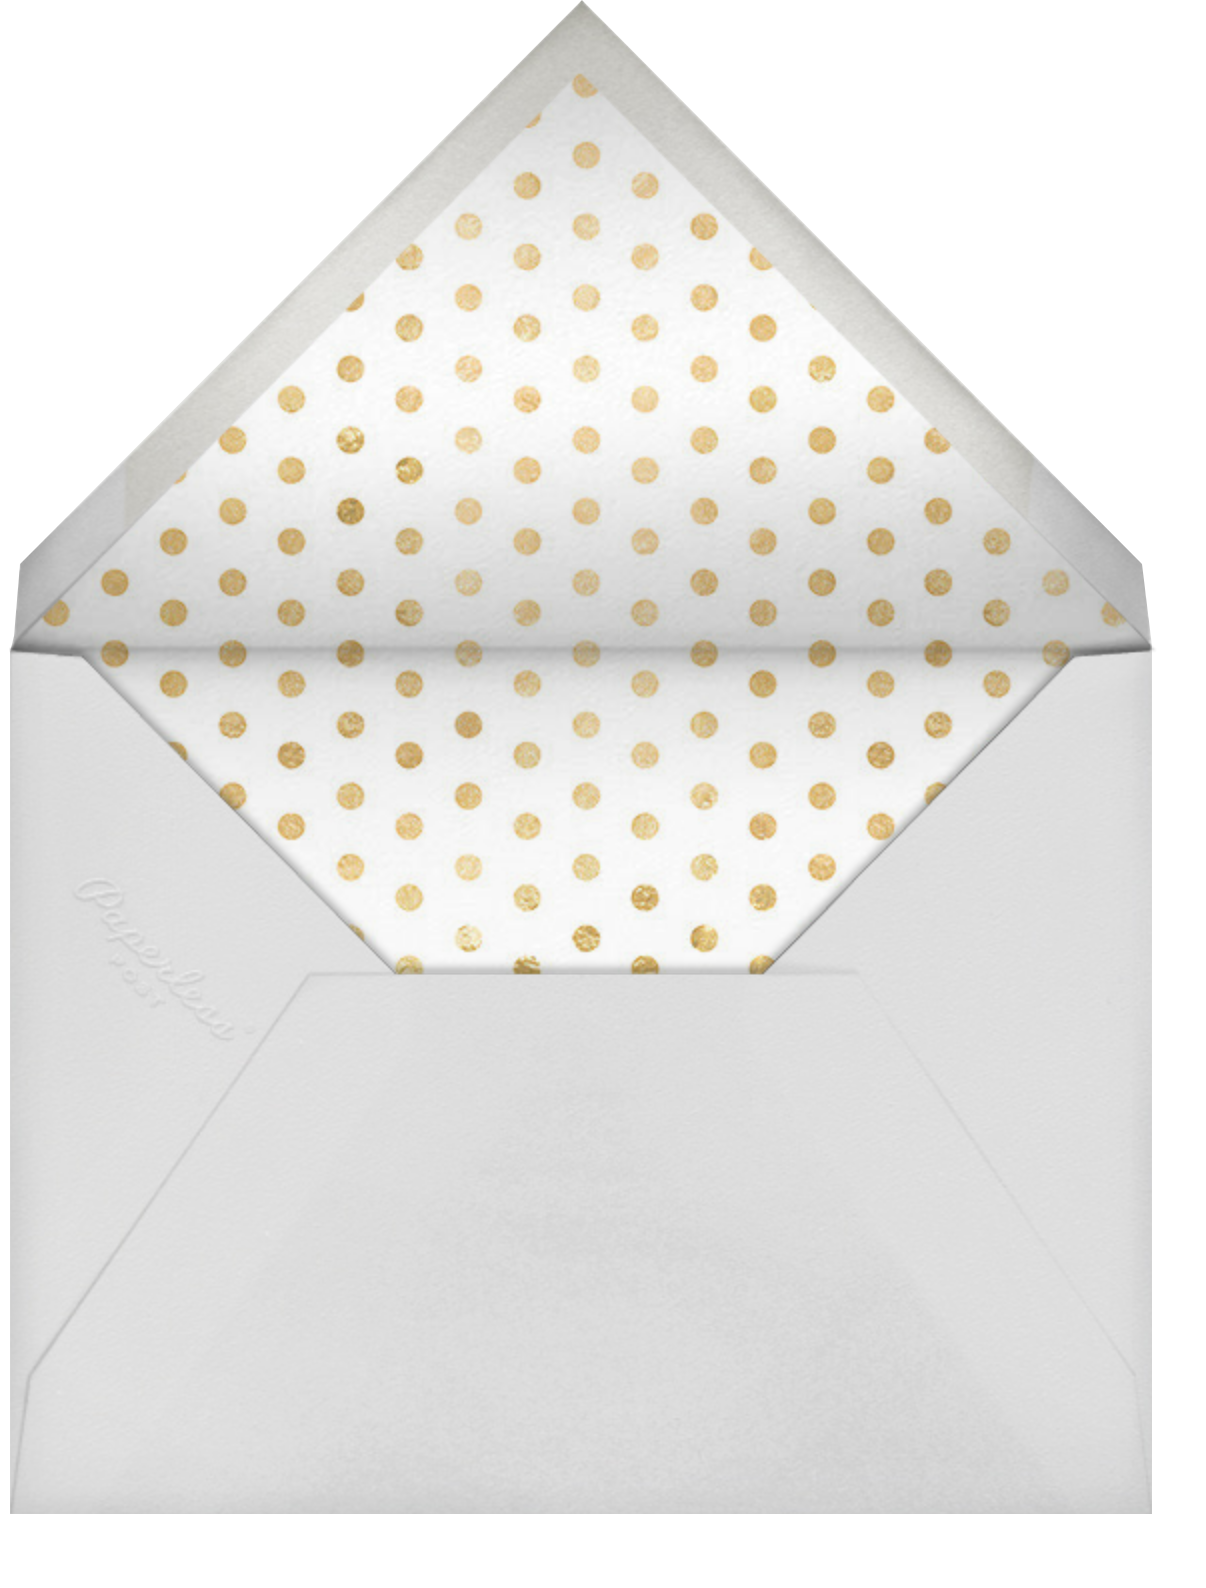 Buttercup Garland - Rifle Paper Co. - Engagement party - envelope back